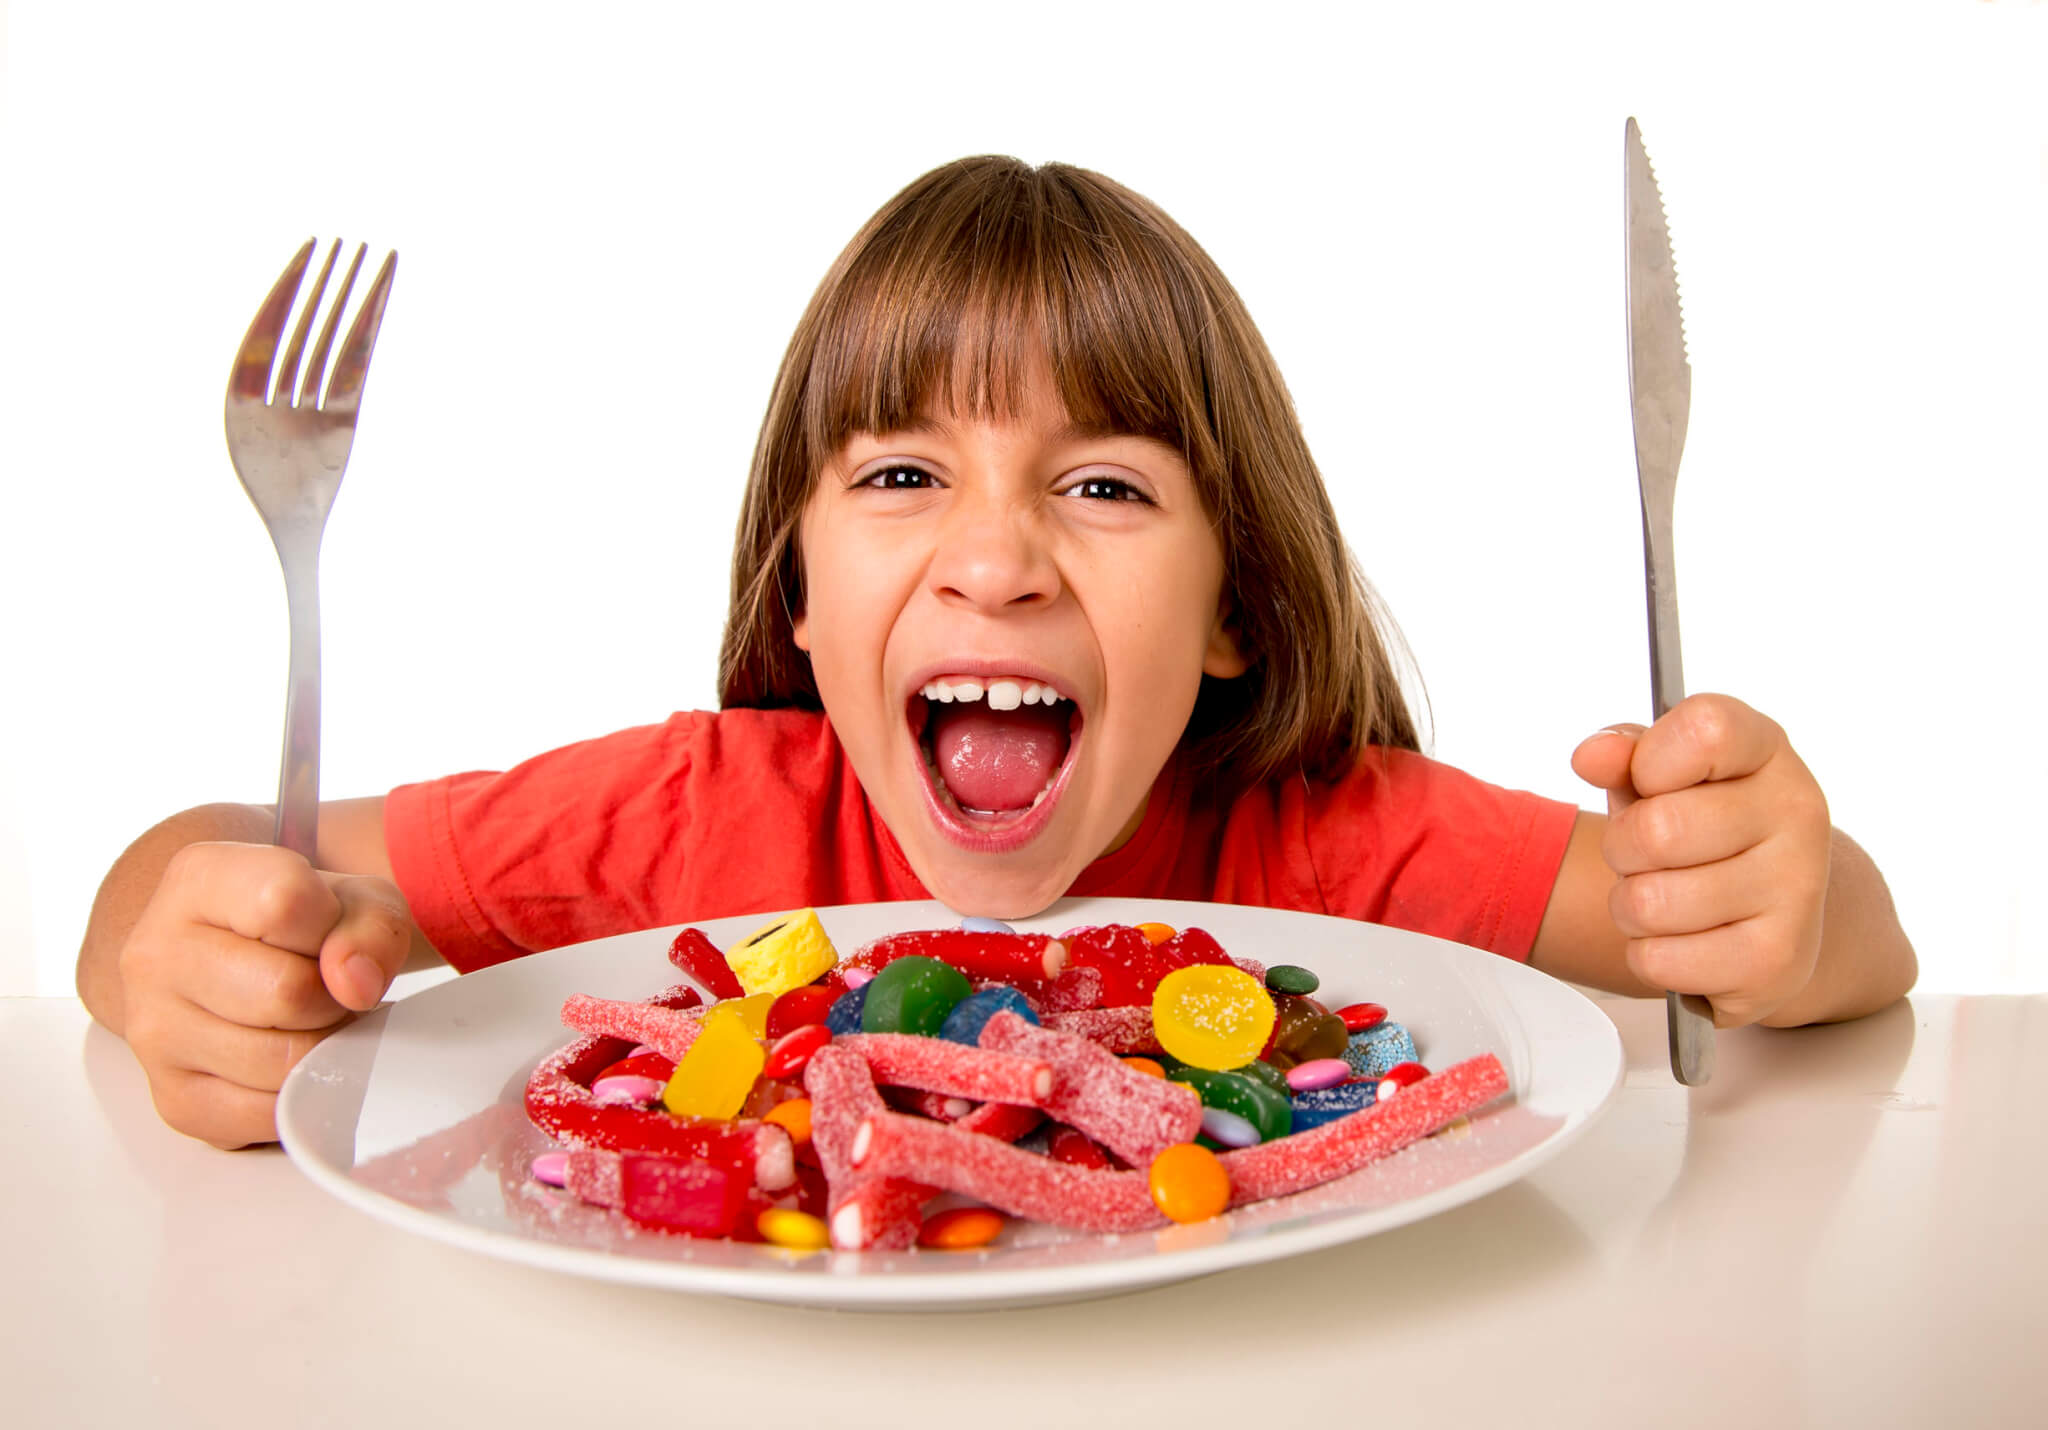 How to Break Your Child's Sugar Addiction